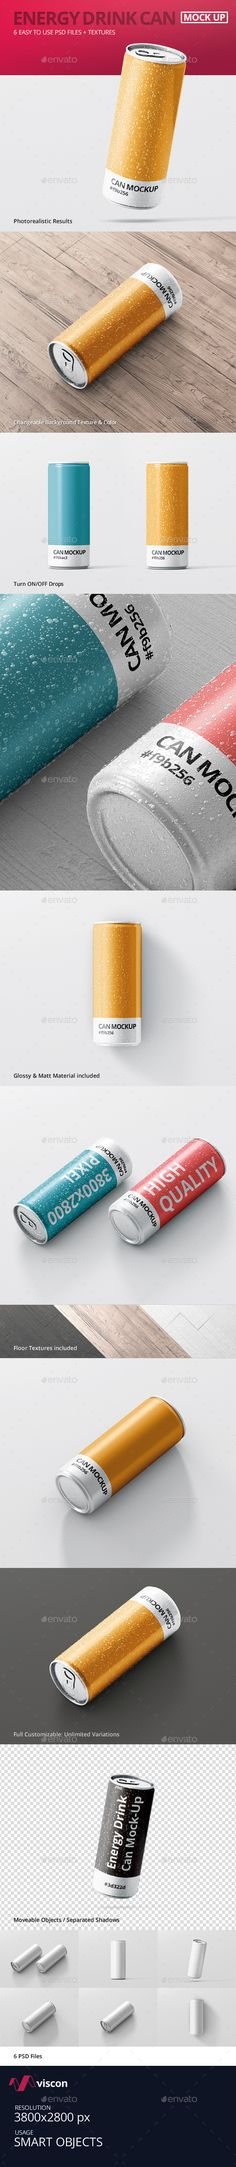 Energy Drink Can MockUp — Photoshop PSD #aluminium #packaging • Available here → https://graphicriver.net/item/energy-drink-can-mockup/12447508?ref=pxcr